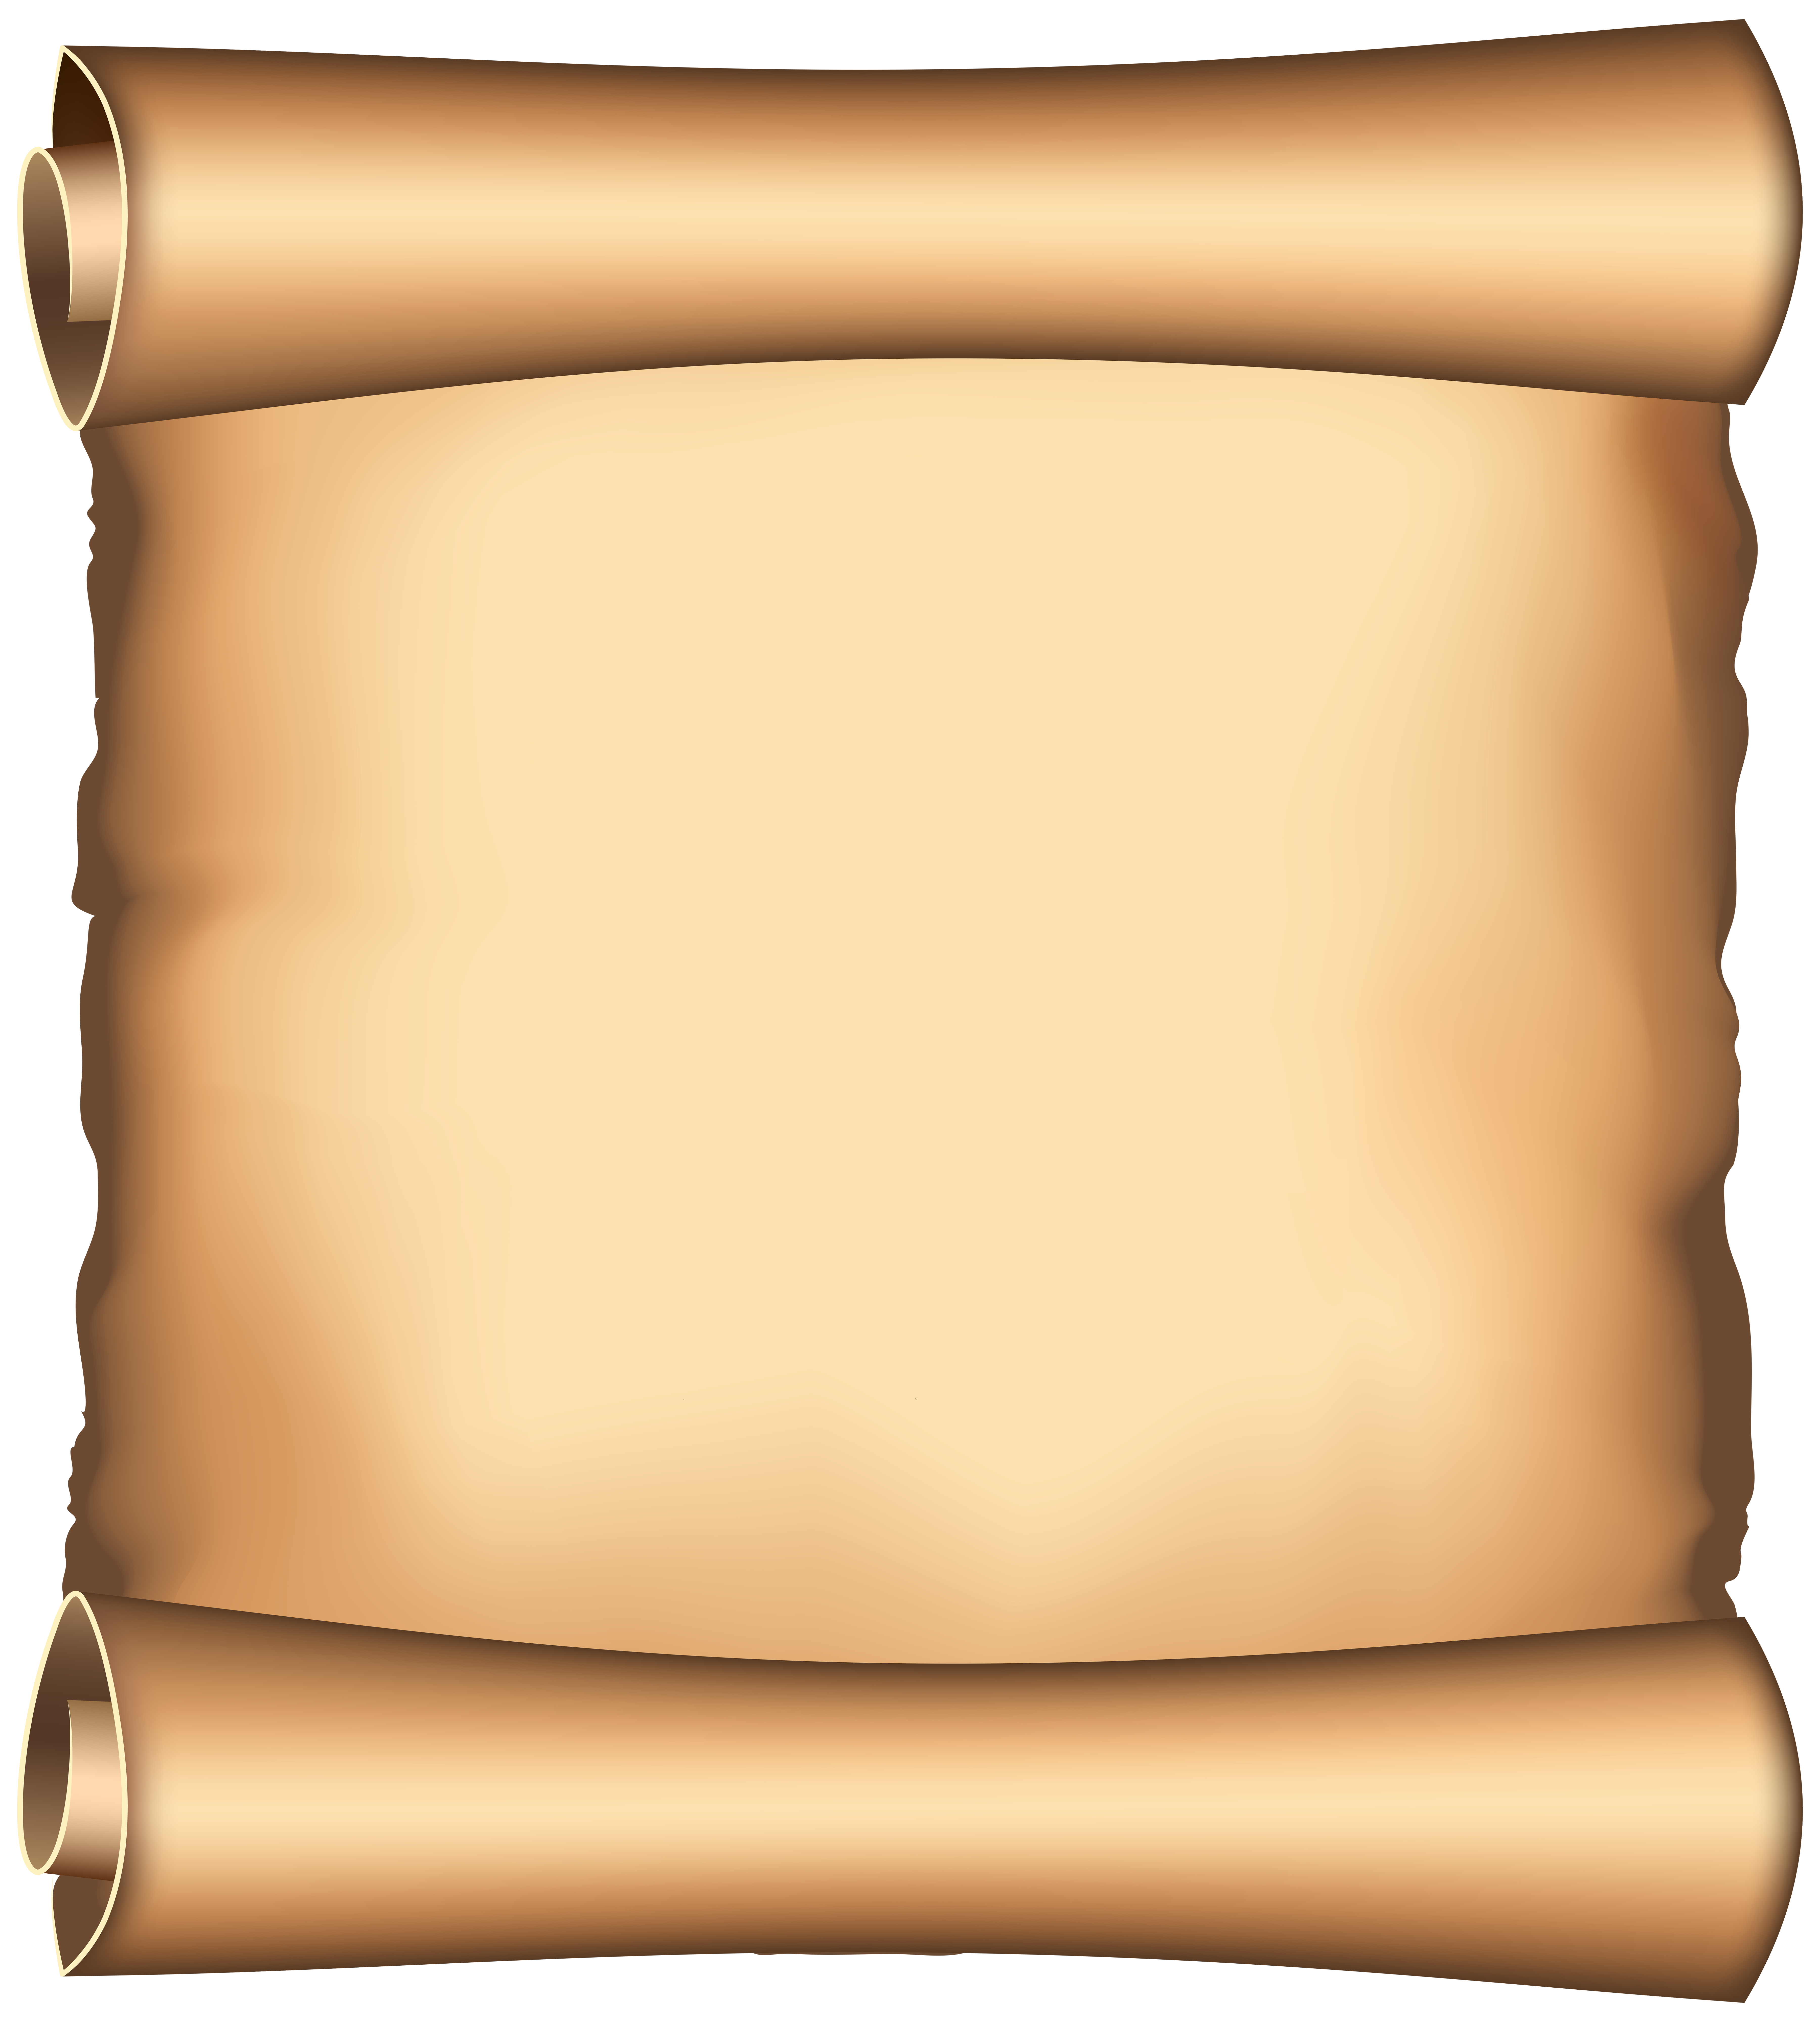 Document clipart papyrus scroll. Png clip art image